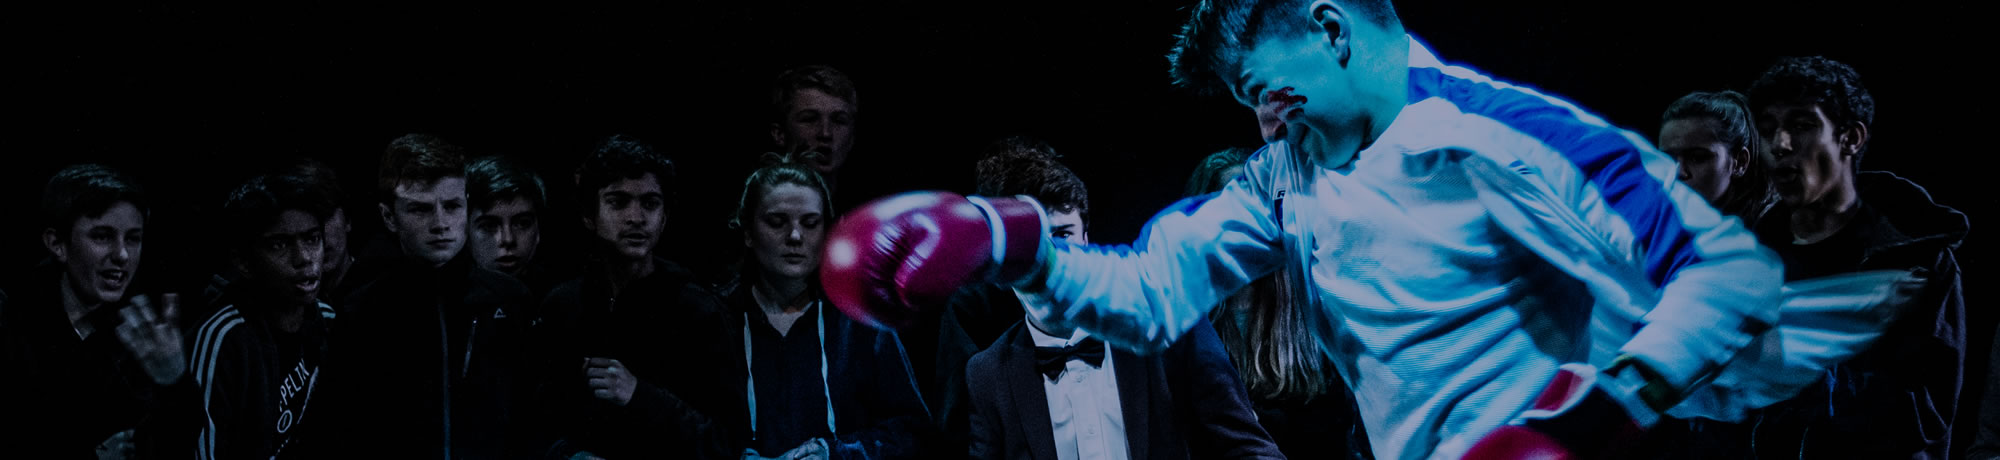 """More than any other theatre company, including the best of the professionals, Edward&#39;s Boys are in the vanguard of exploring the theatrical style of Shakespeare&#39;s contemporaries""<br /><br />PROFESSOR JOHN JOWETT, THE SHAKESPEARE INSTITUTE"